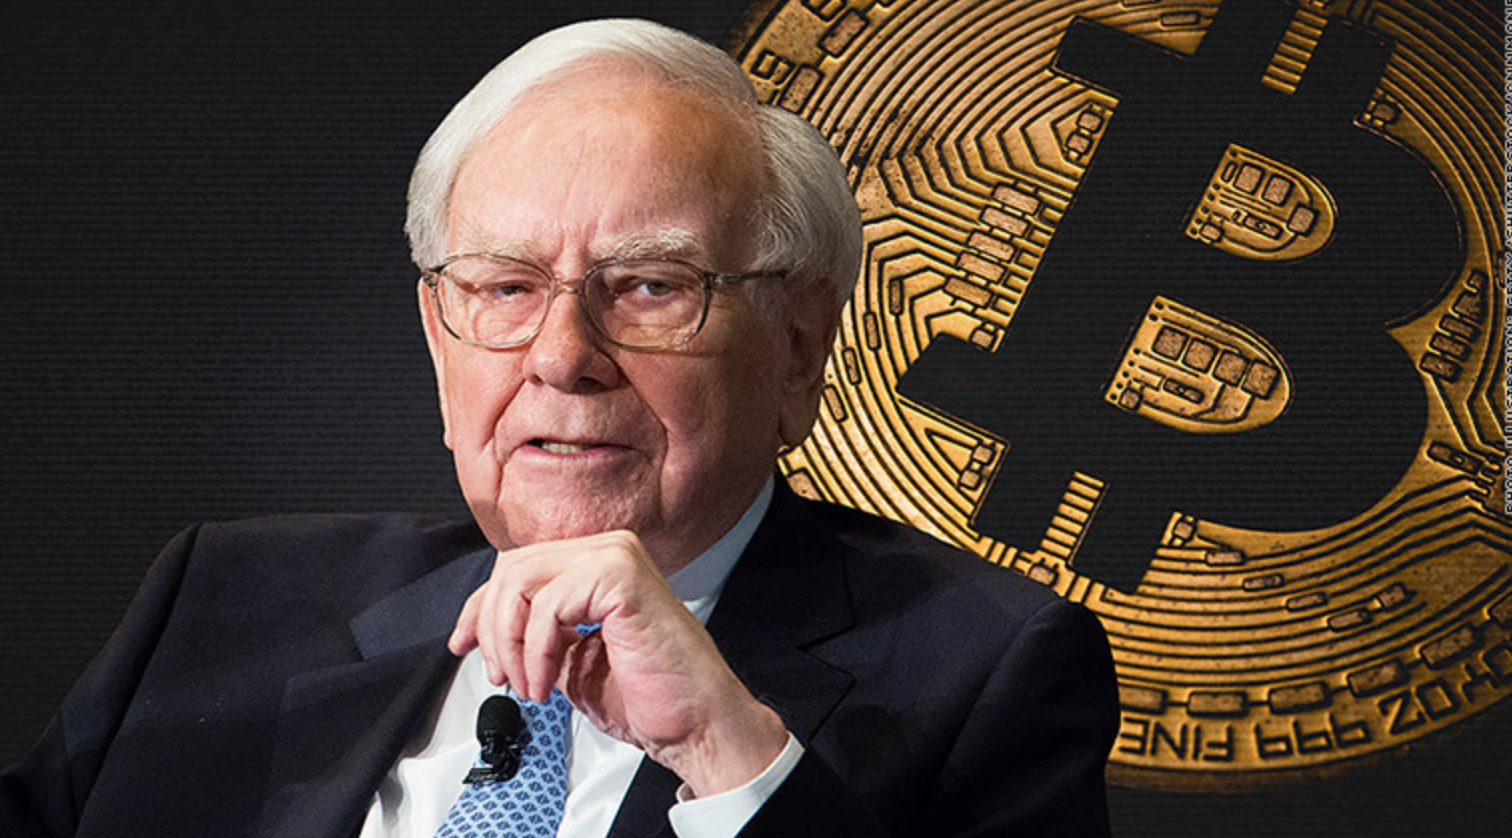 Crypto-currency Founder Met With Warren Buffett For Charity Lunch (#GotBitcoin?)